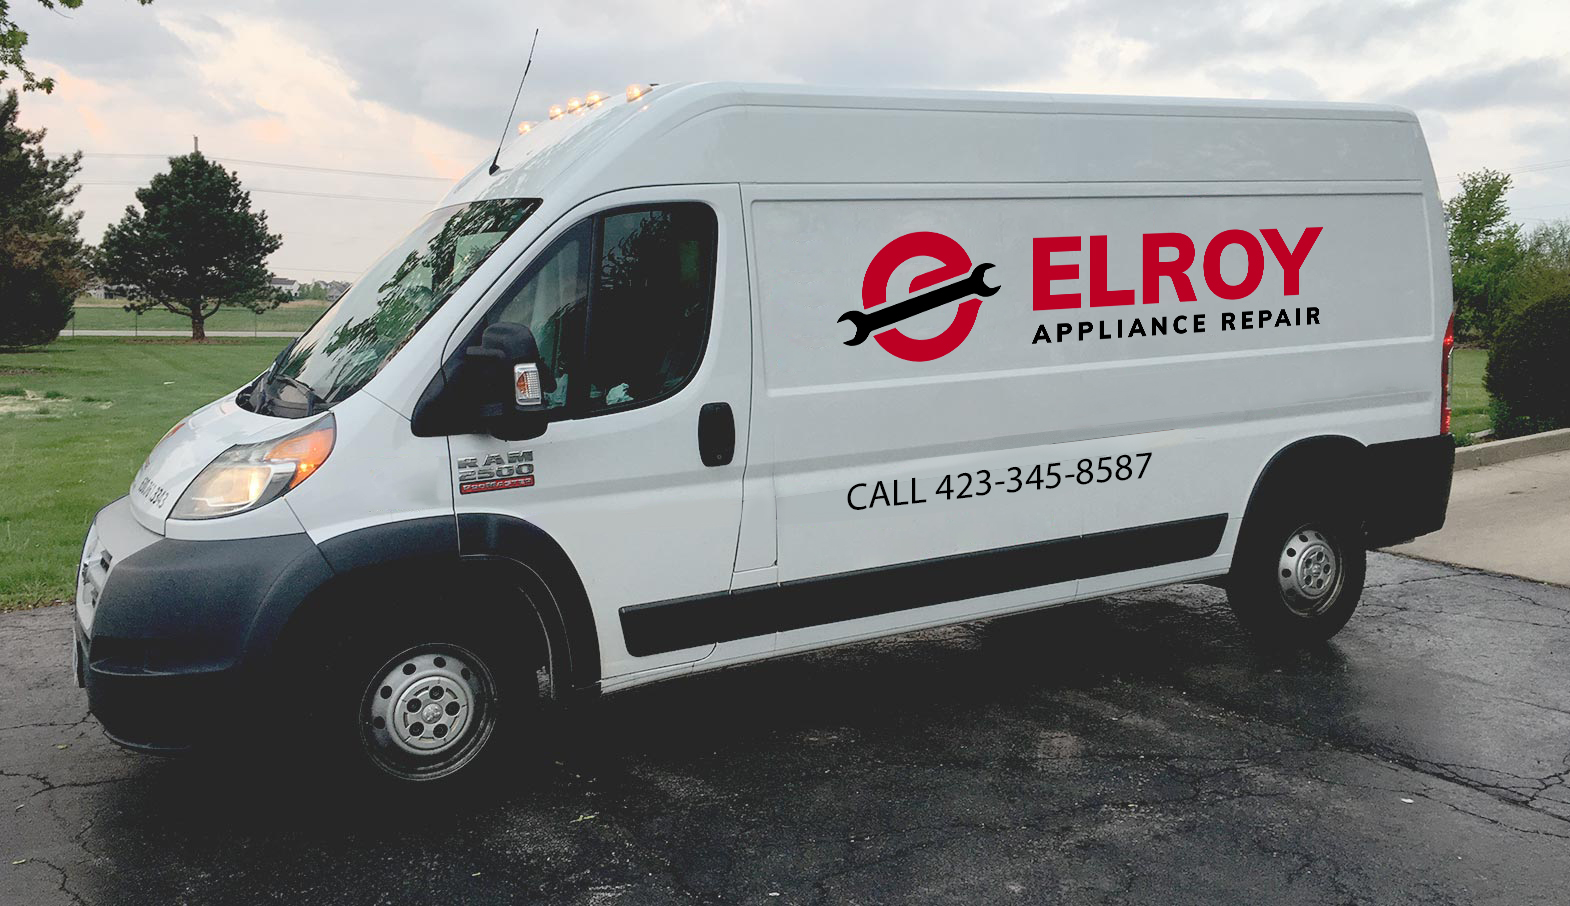 elroy appliance repair in chattanooga